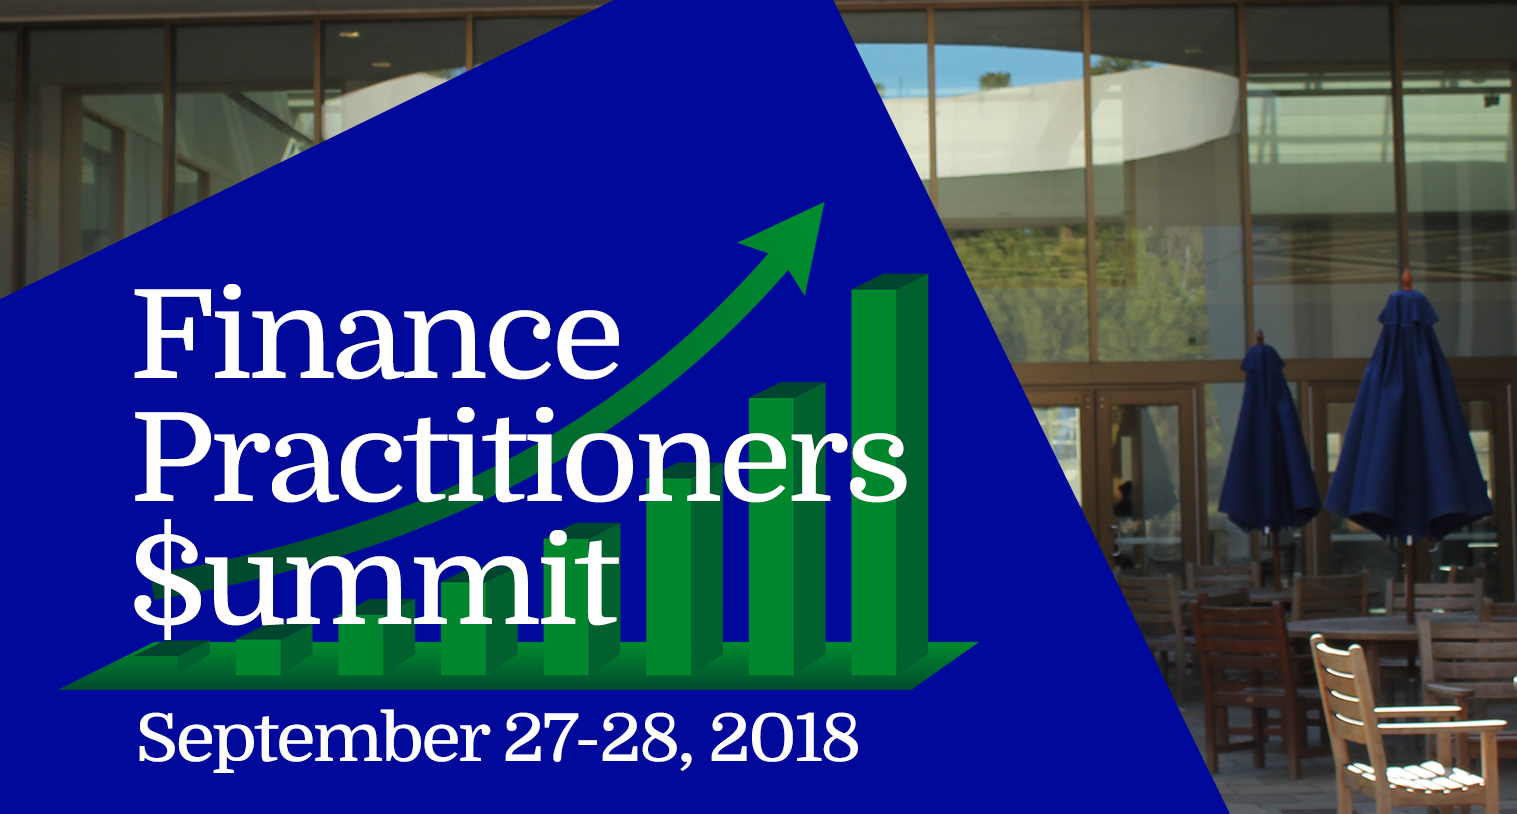 Finance Practitioners Summit